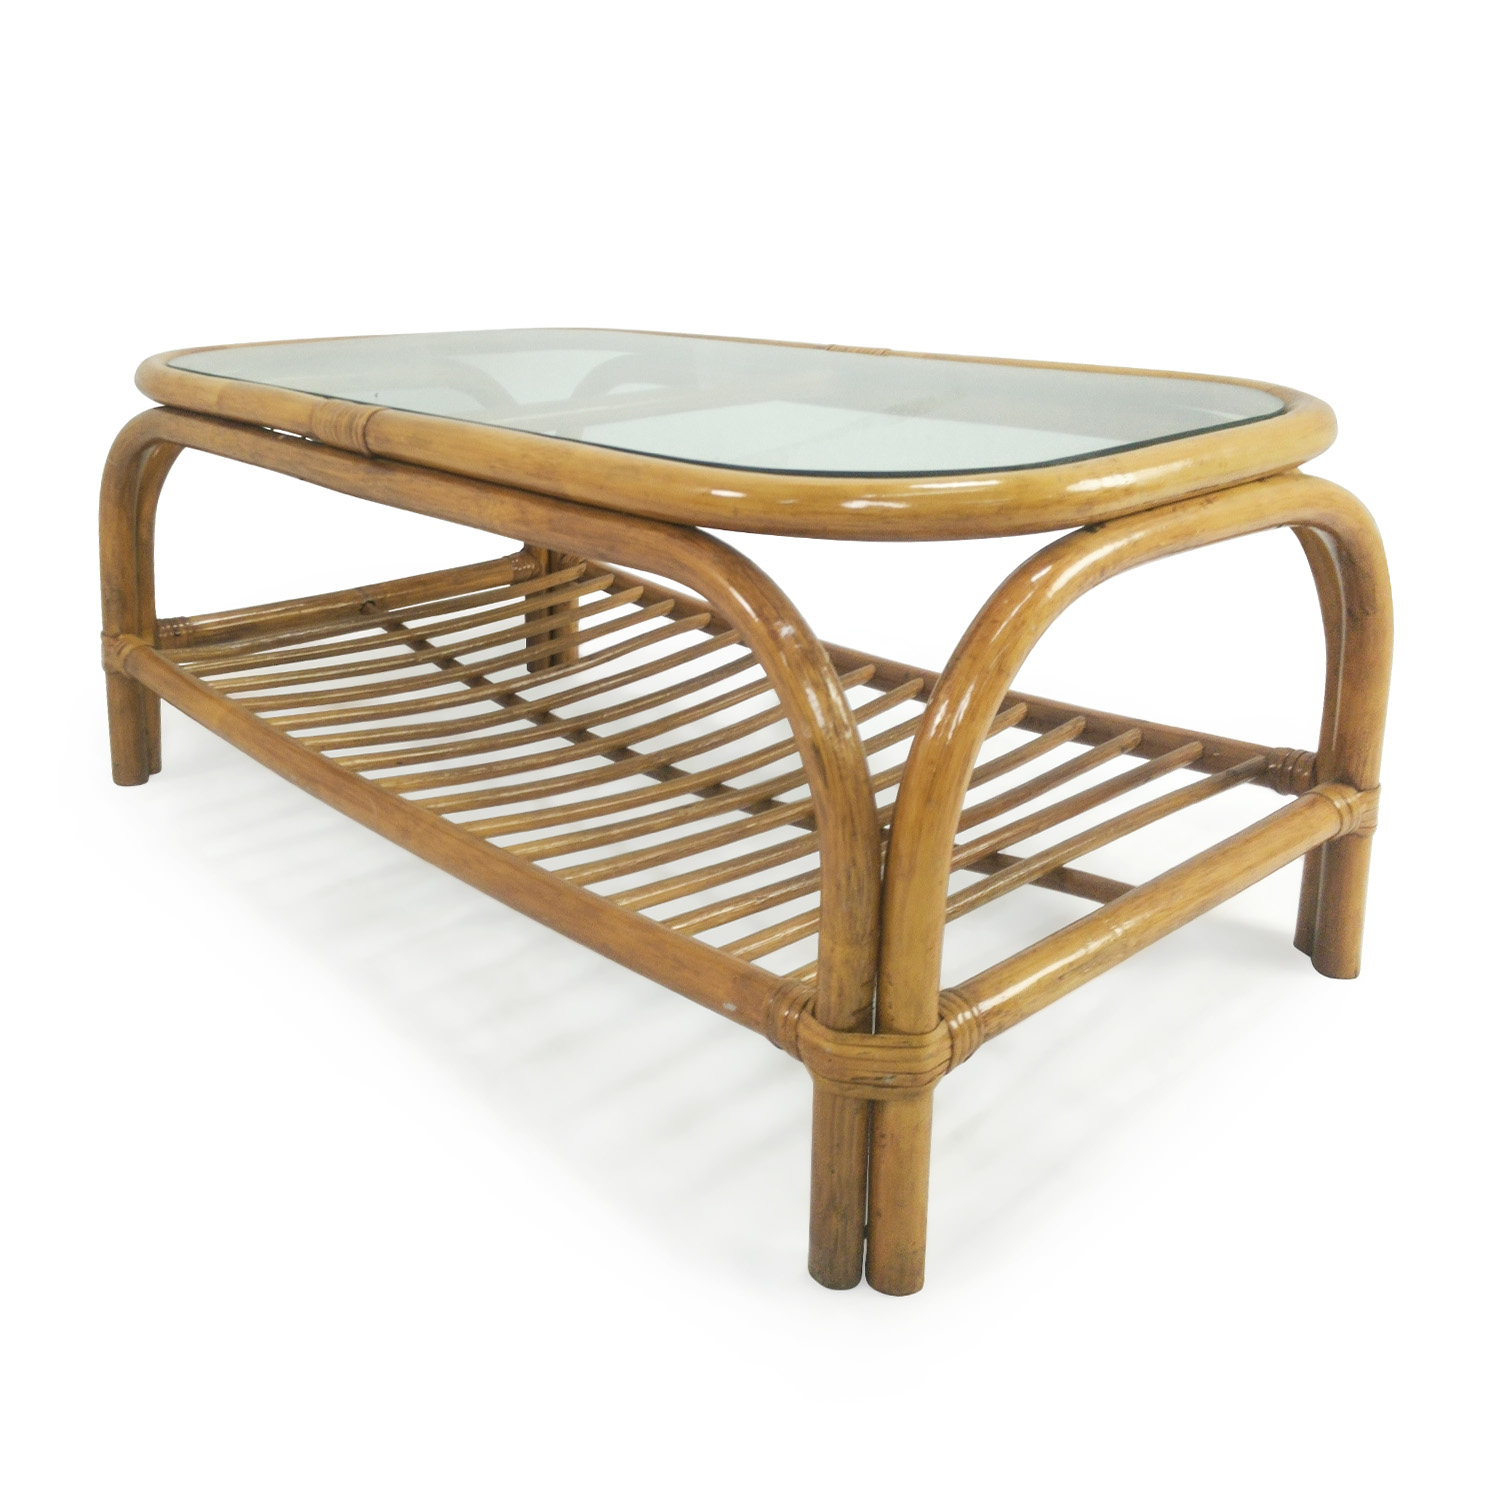 80 off glass top bamboo coffee table tables Coffee tables glass top